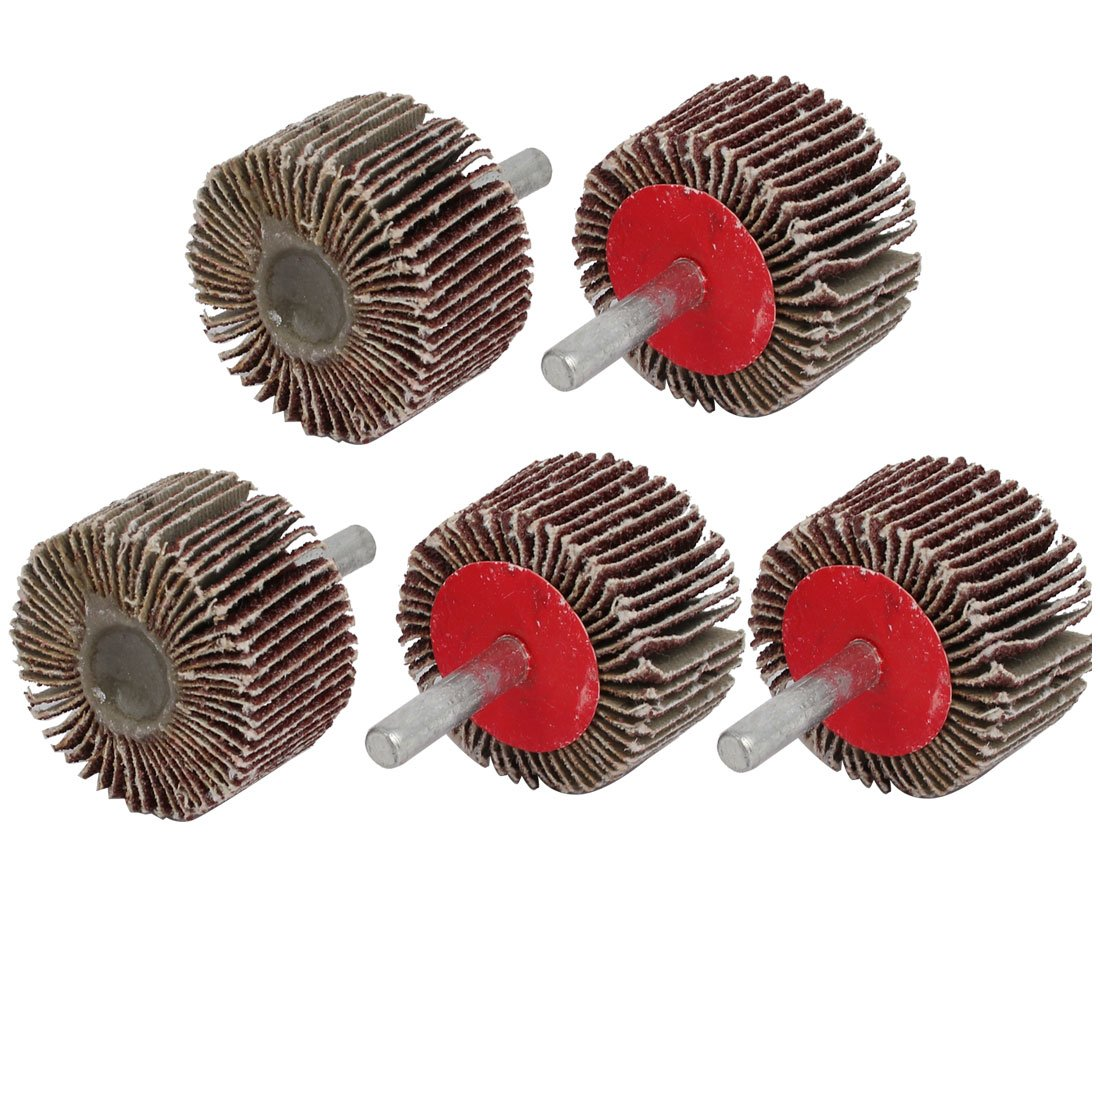 uxcell 40mm Dia 80 Grit Cylindrical Head Emery Cloth Abrasive Flap Wheel Brown 5pcs a17051000ux0546